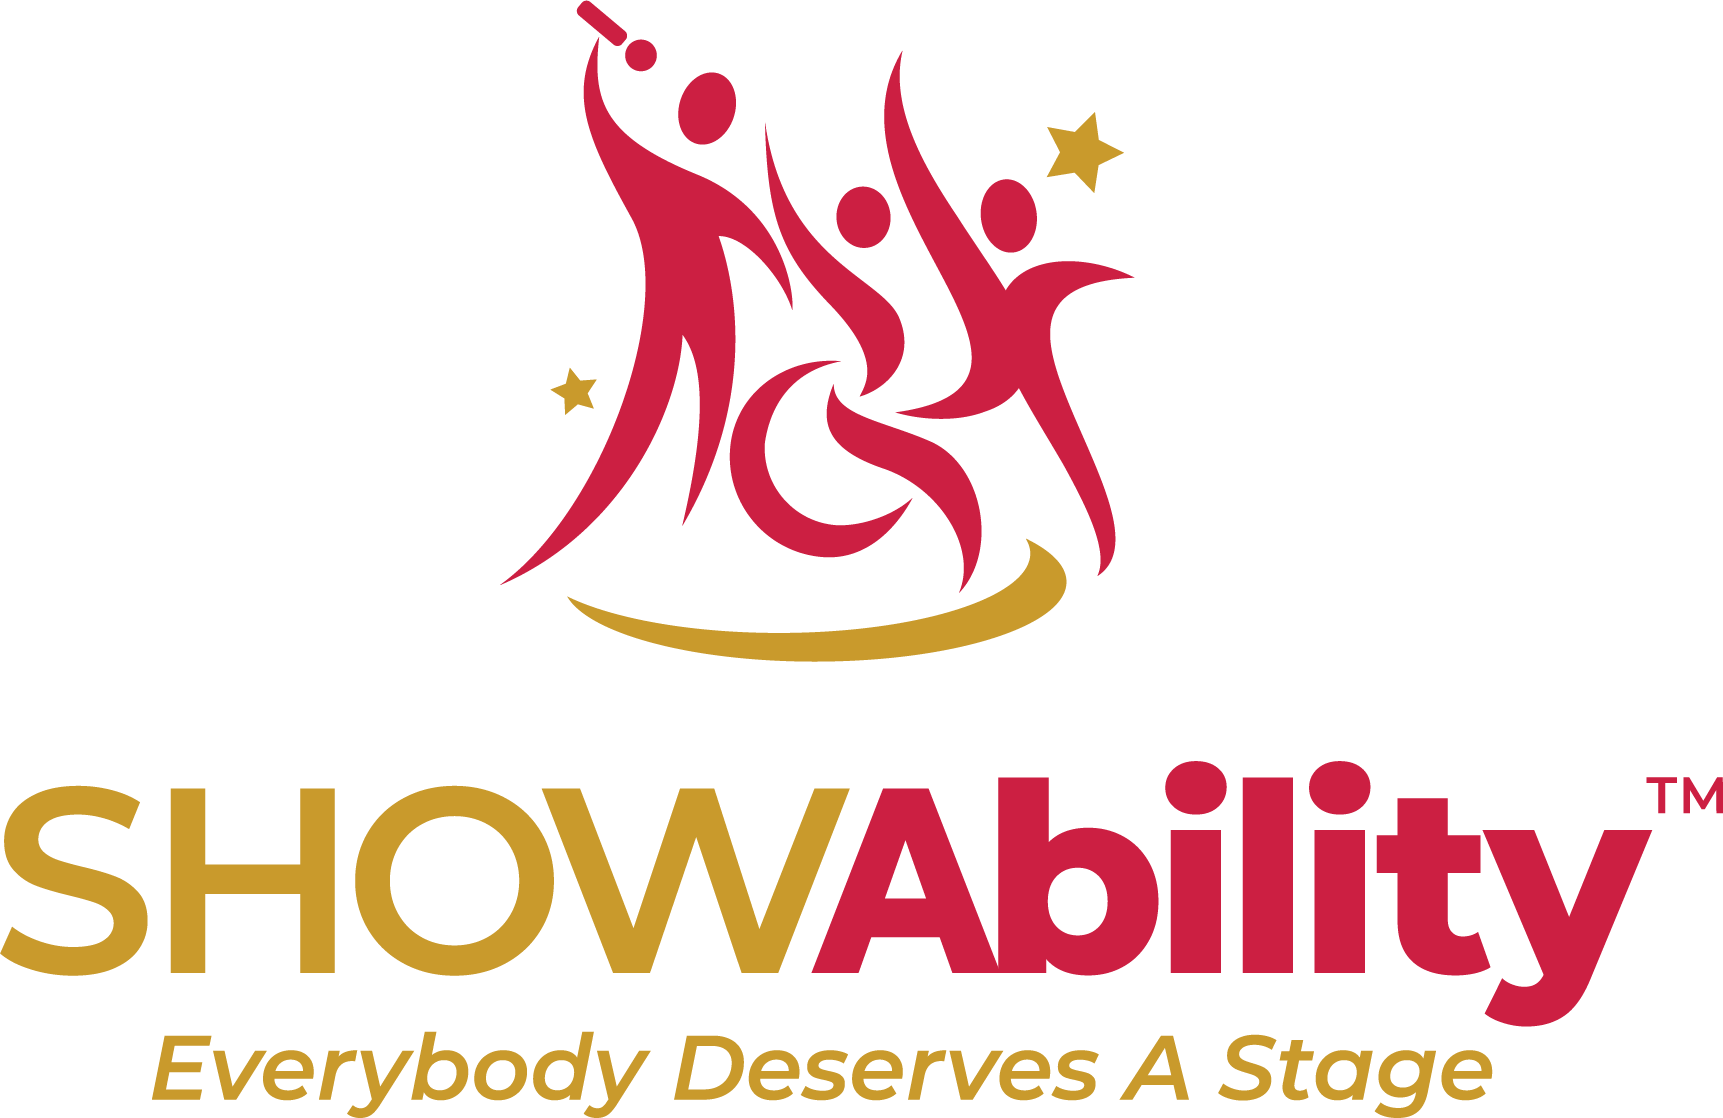 Showability, Inc. Forms Inclusive Chorus of Singers With and Without Disabilities